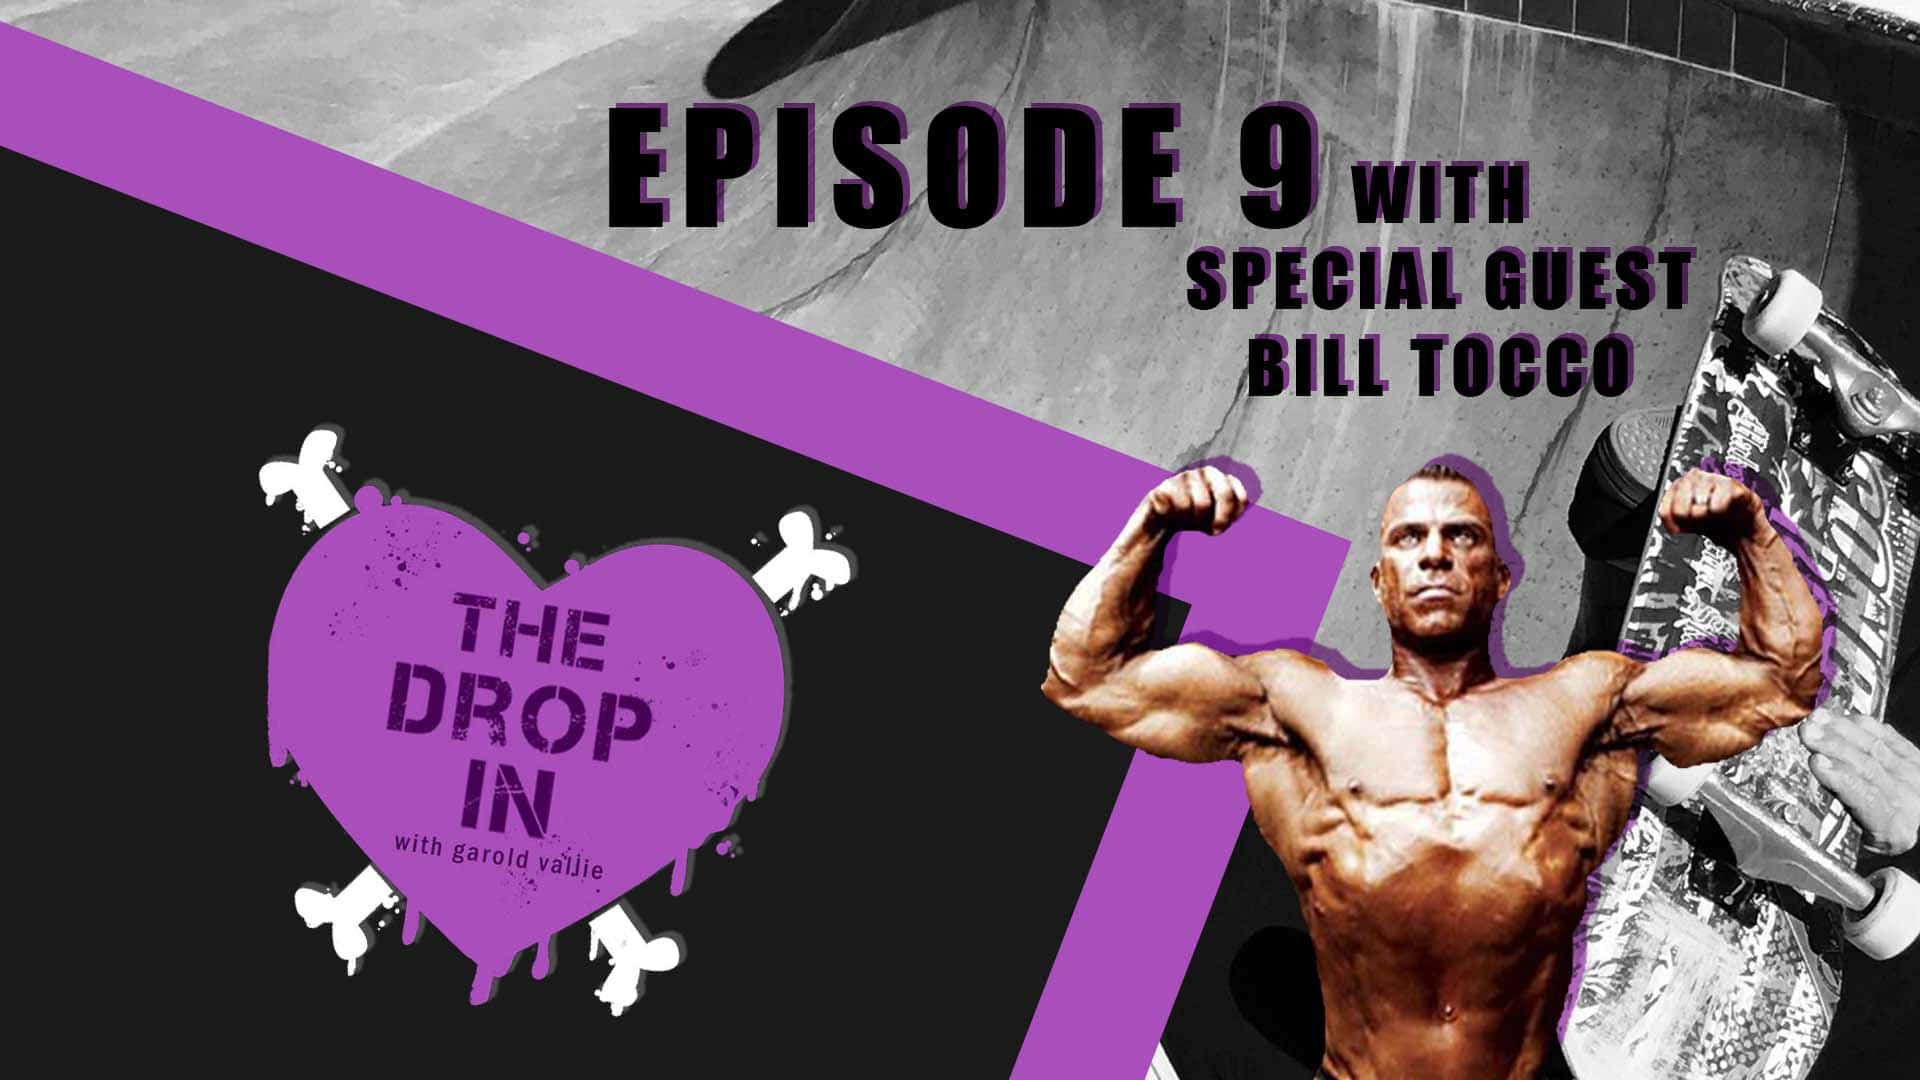 The Drop In with Garold Vallie - Episode 9